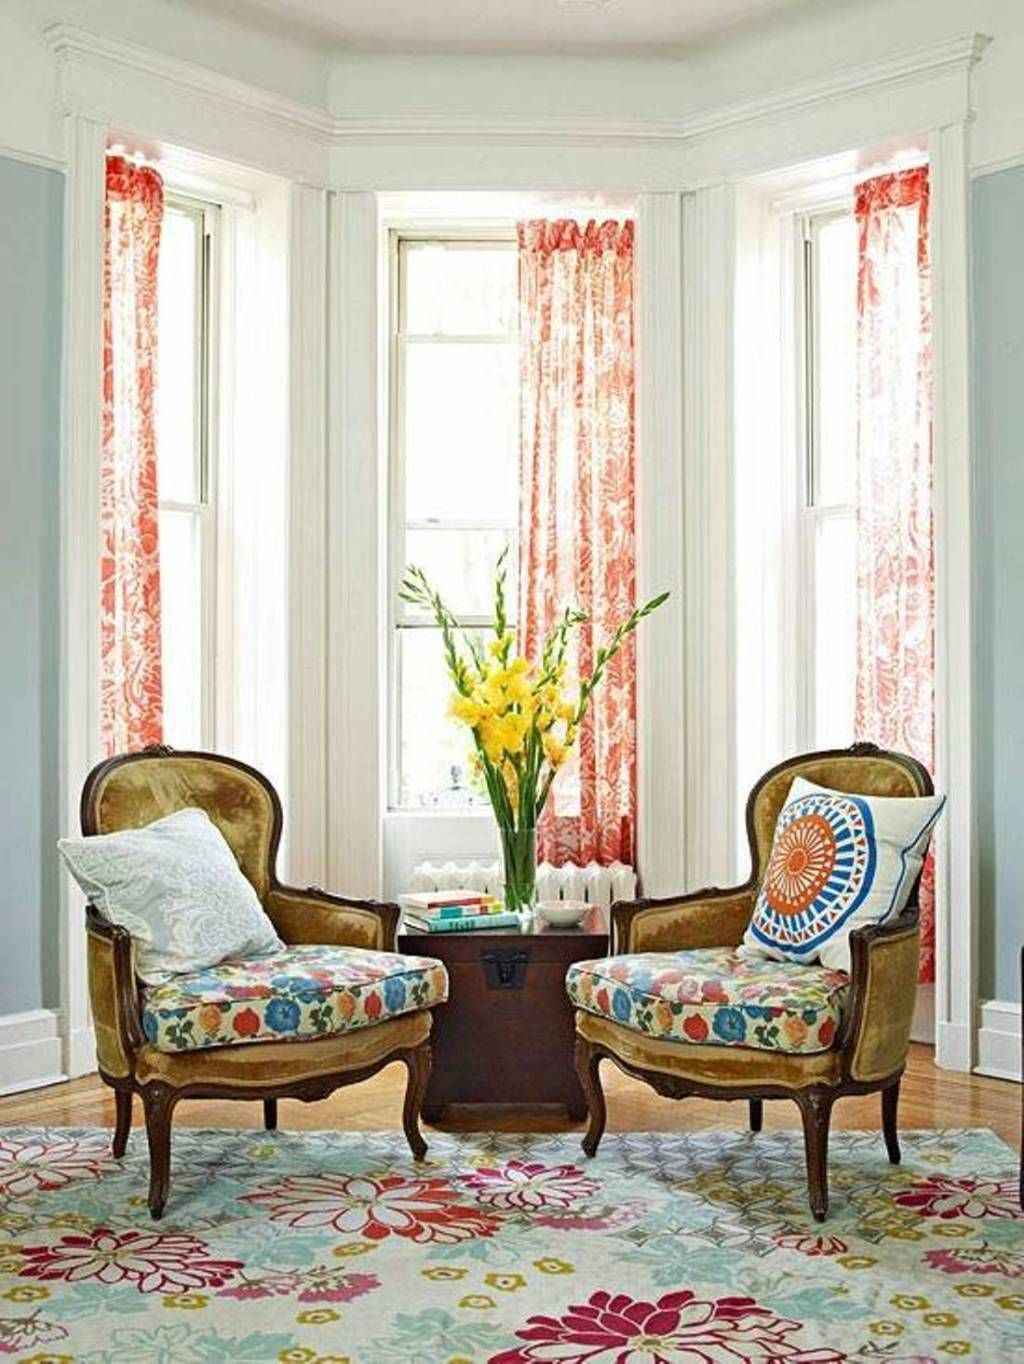 Decoration Ergonomic Armchair With Pillow Feat Fetching Bay Window